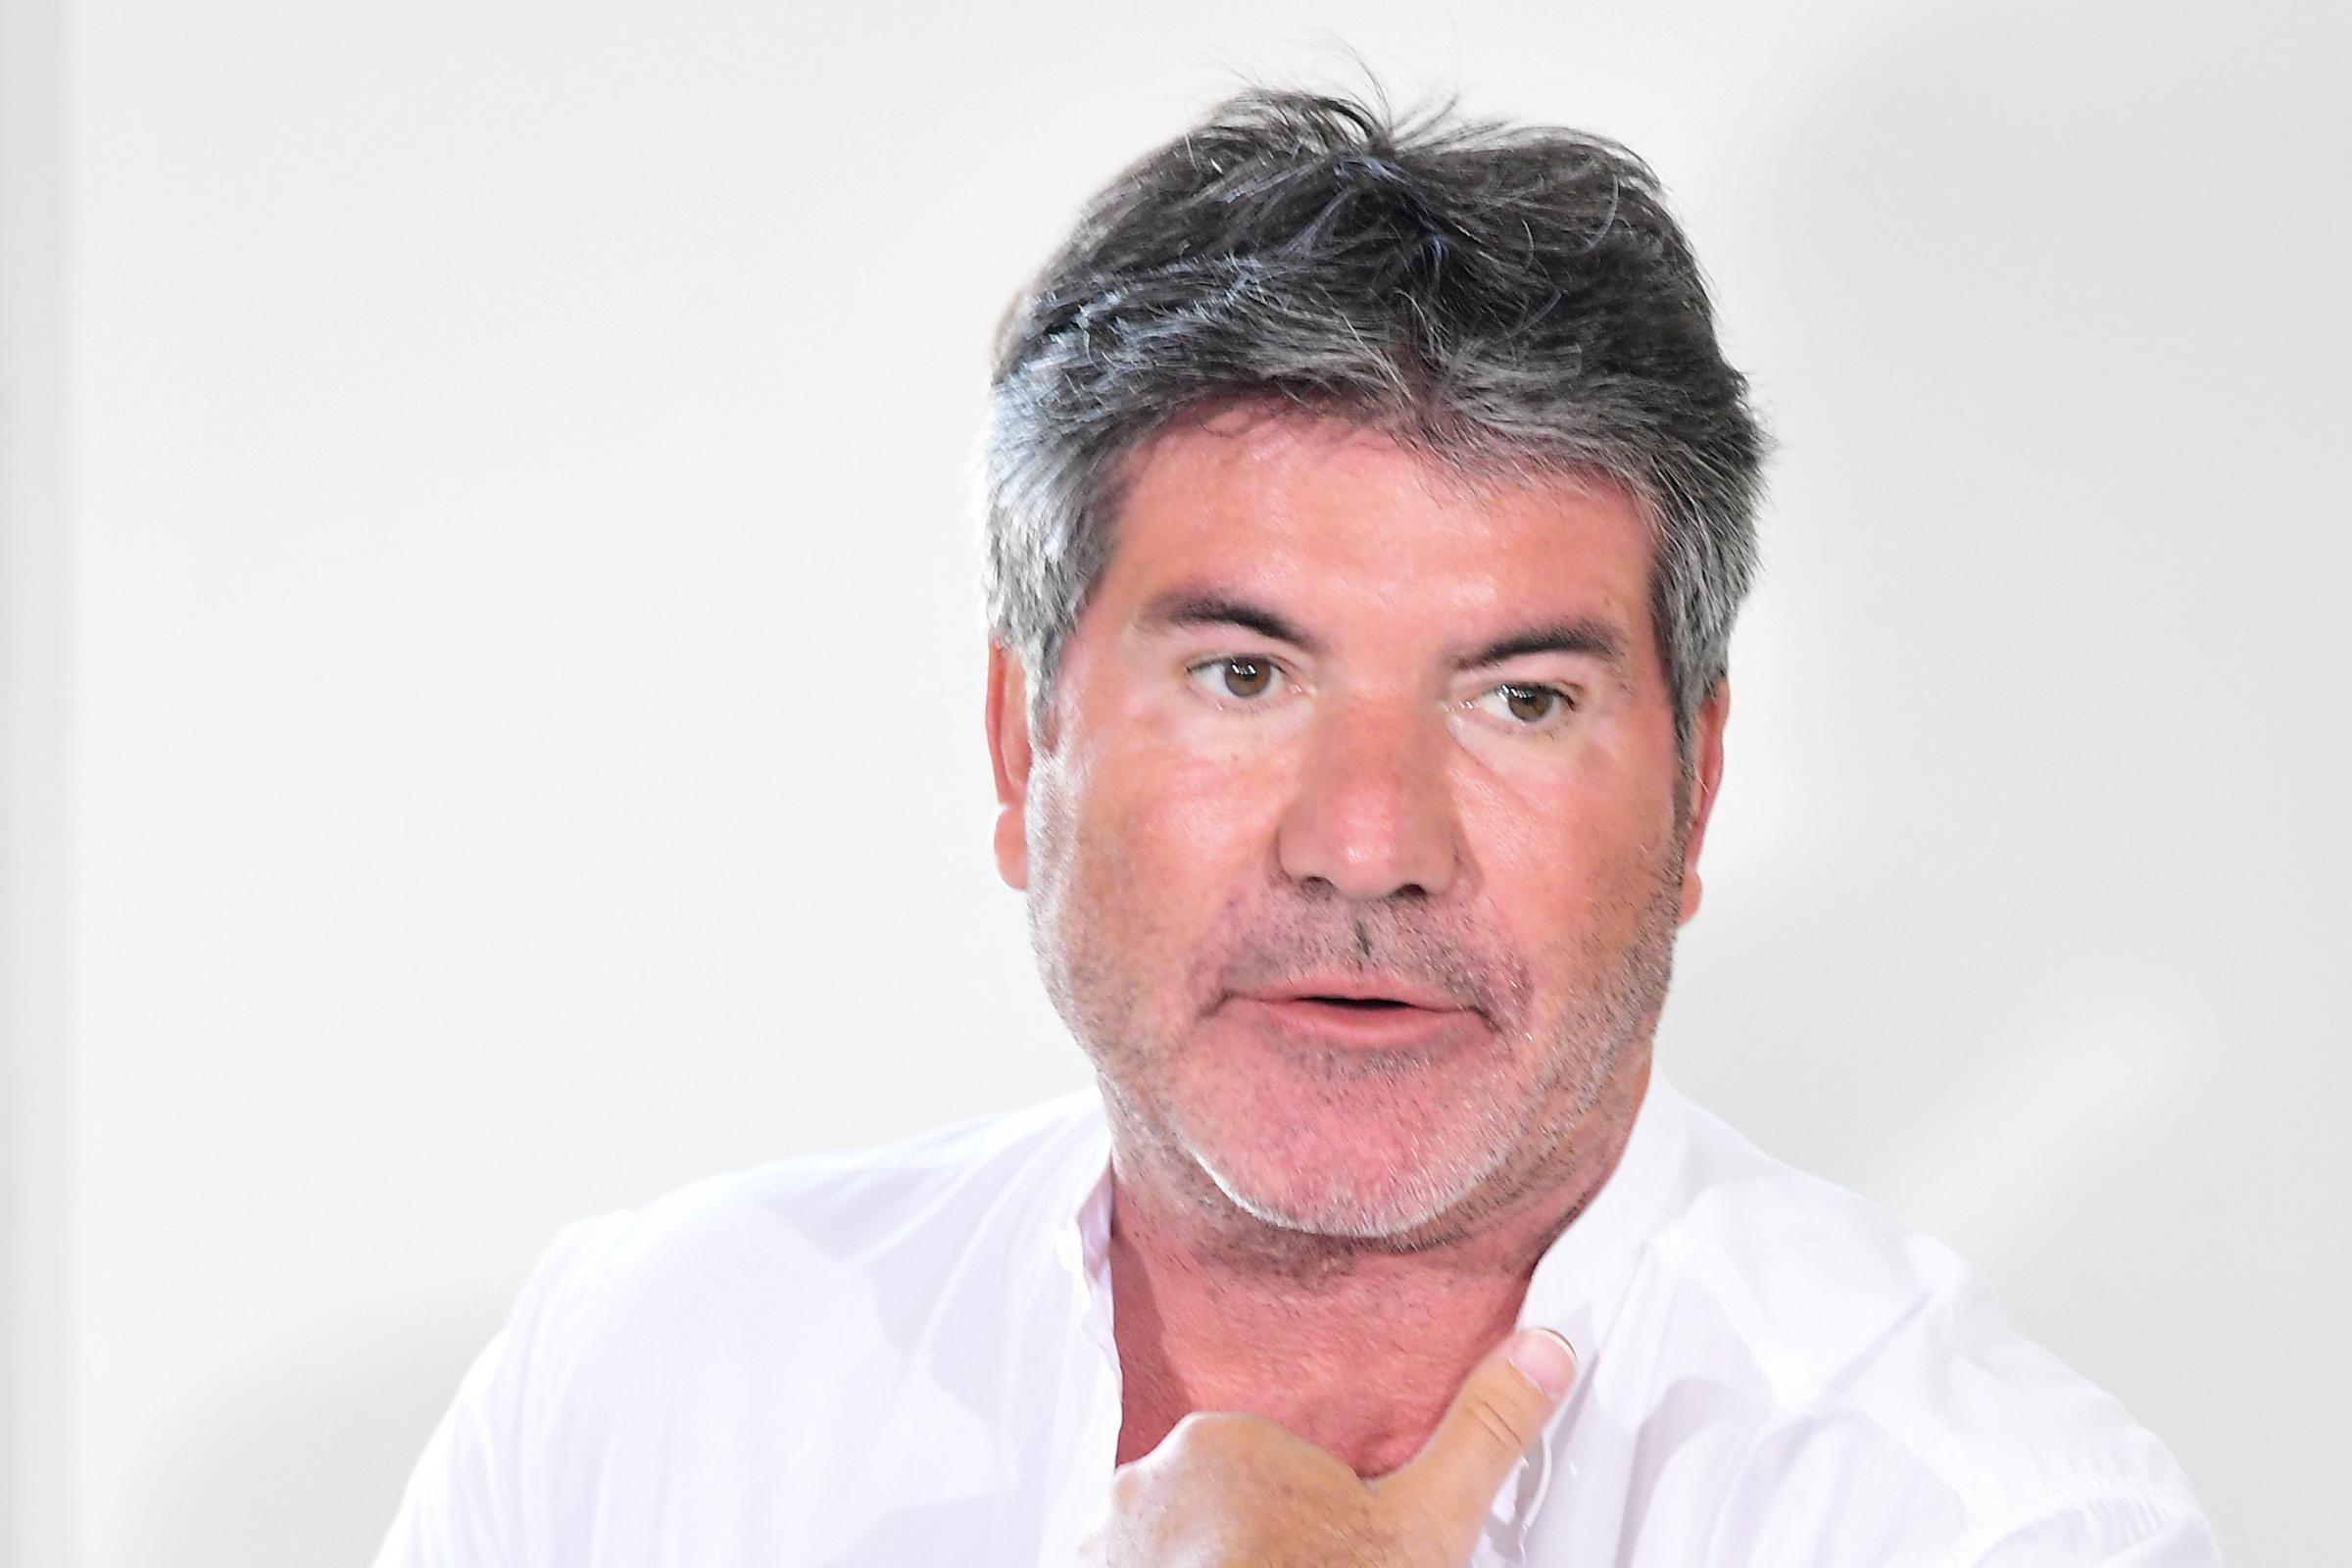 X Factor 'to air until at least 2022' – despite record low ratings